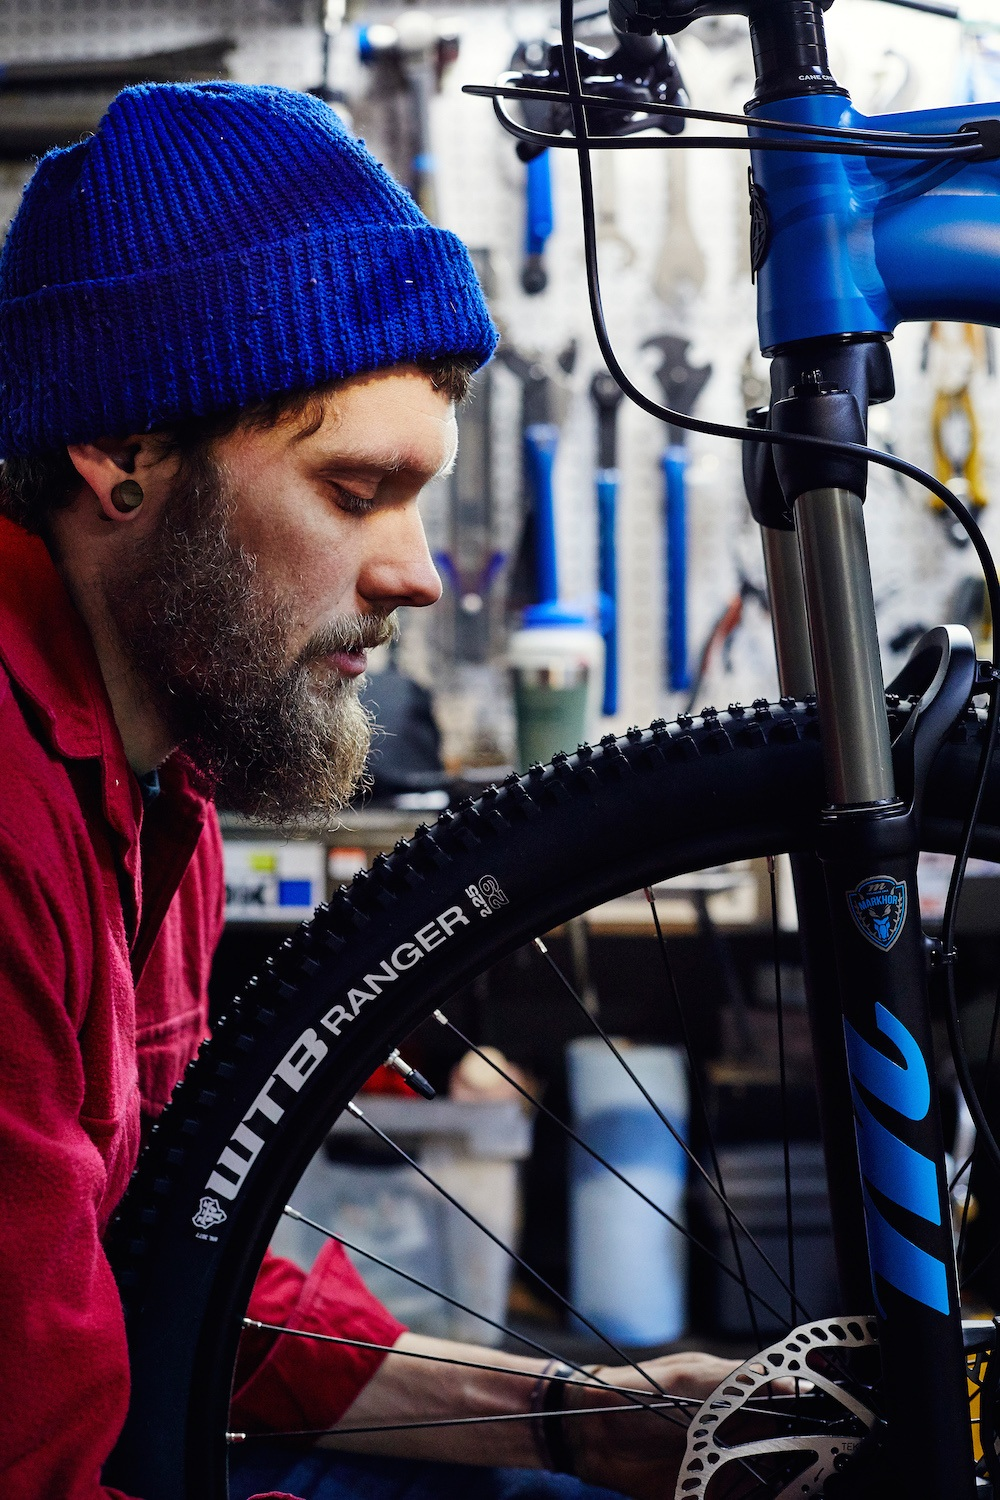 Repairing-blue-bike-Comrade-Cycles.jpg